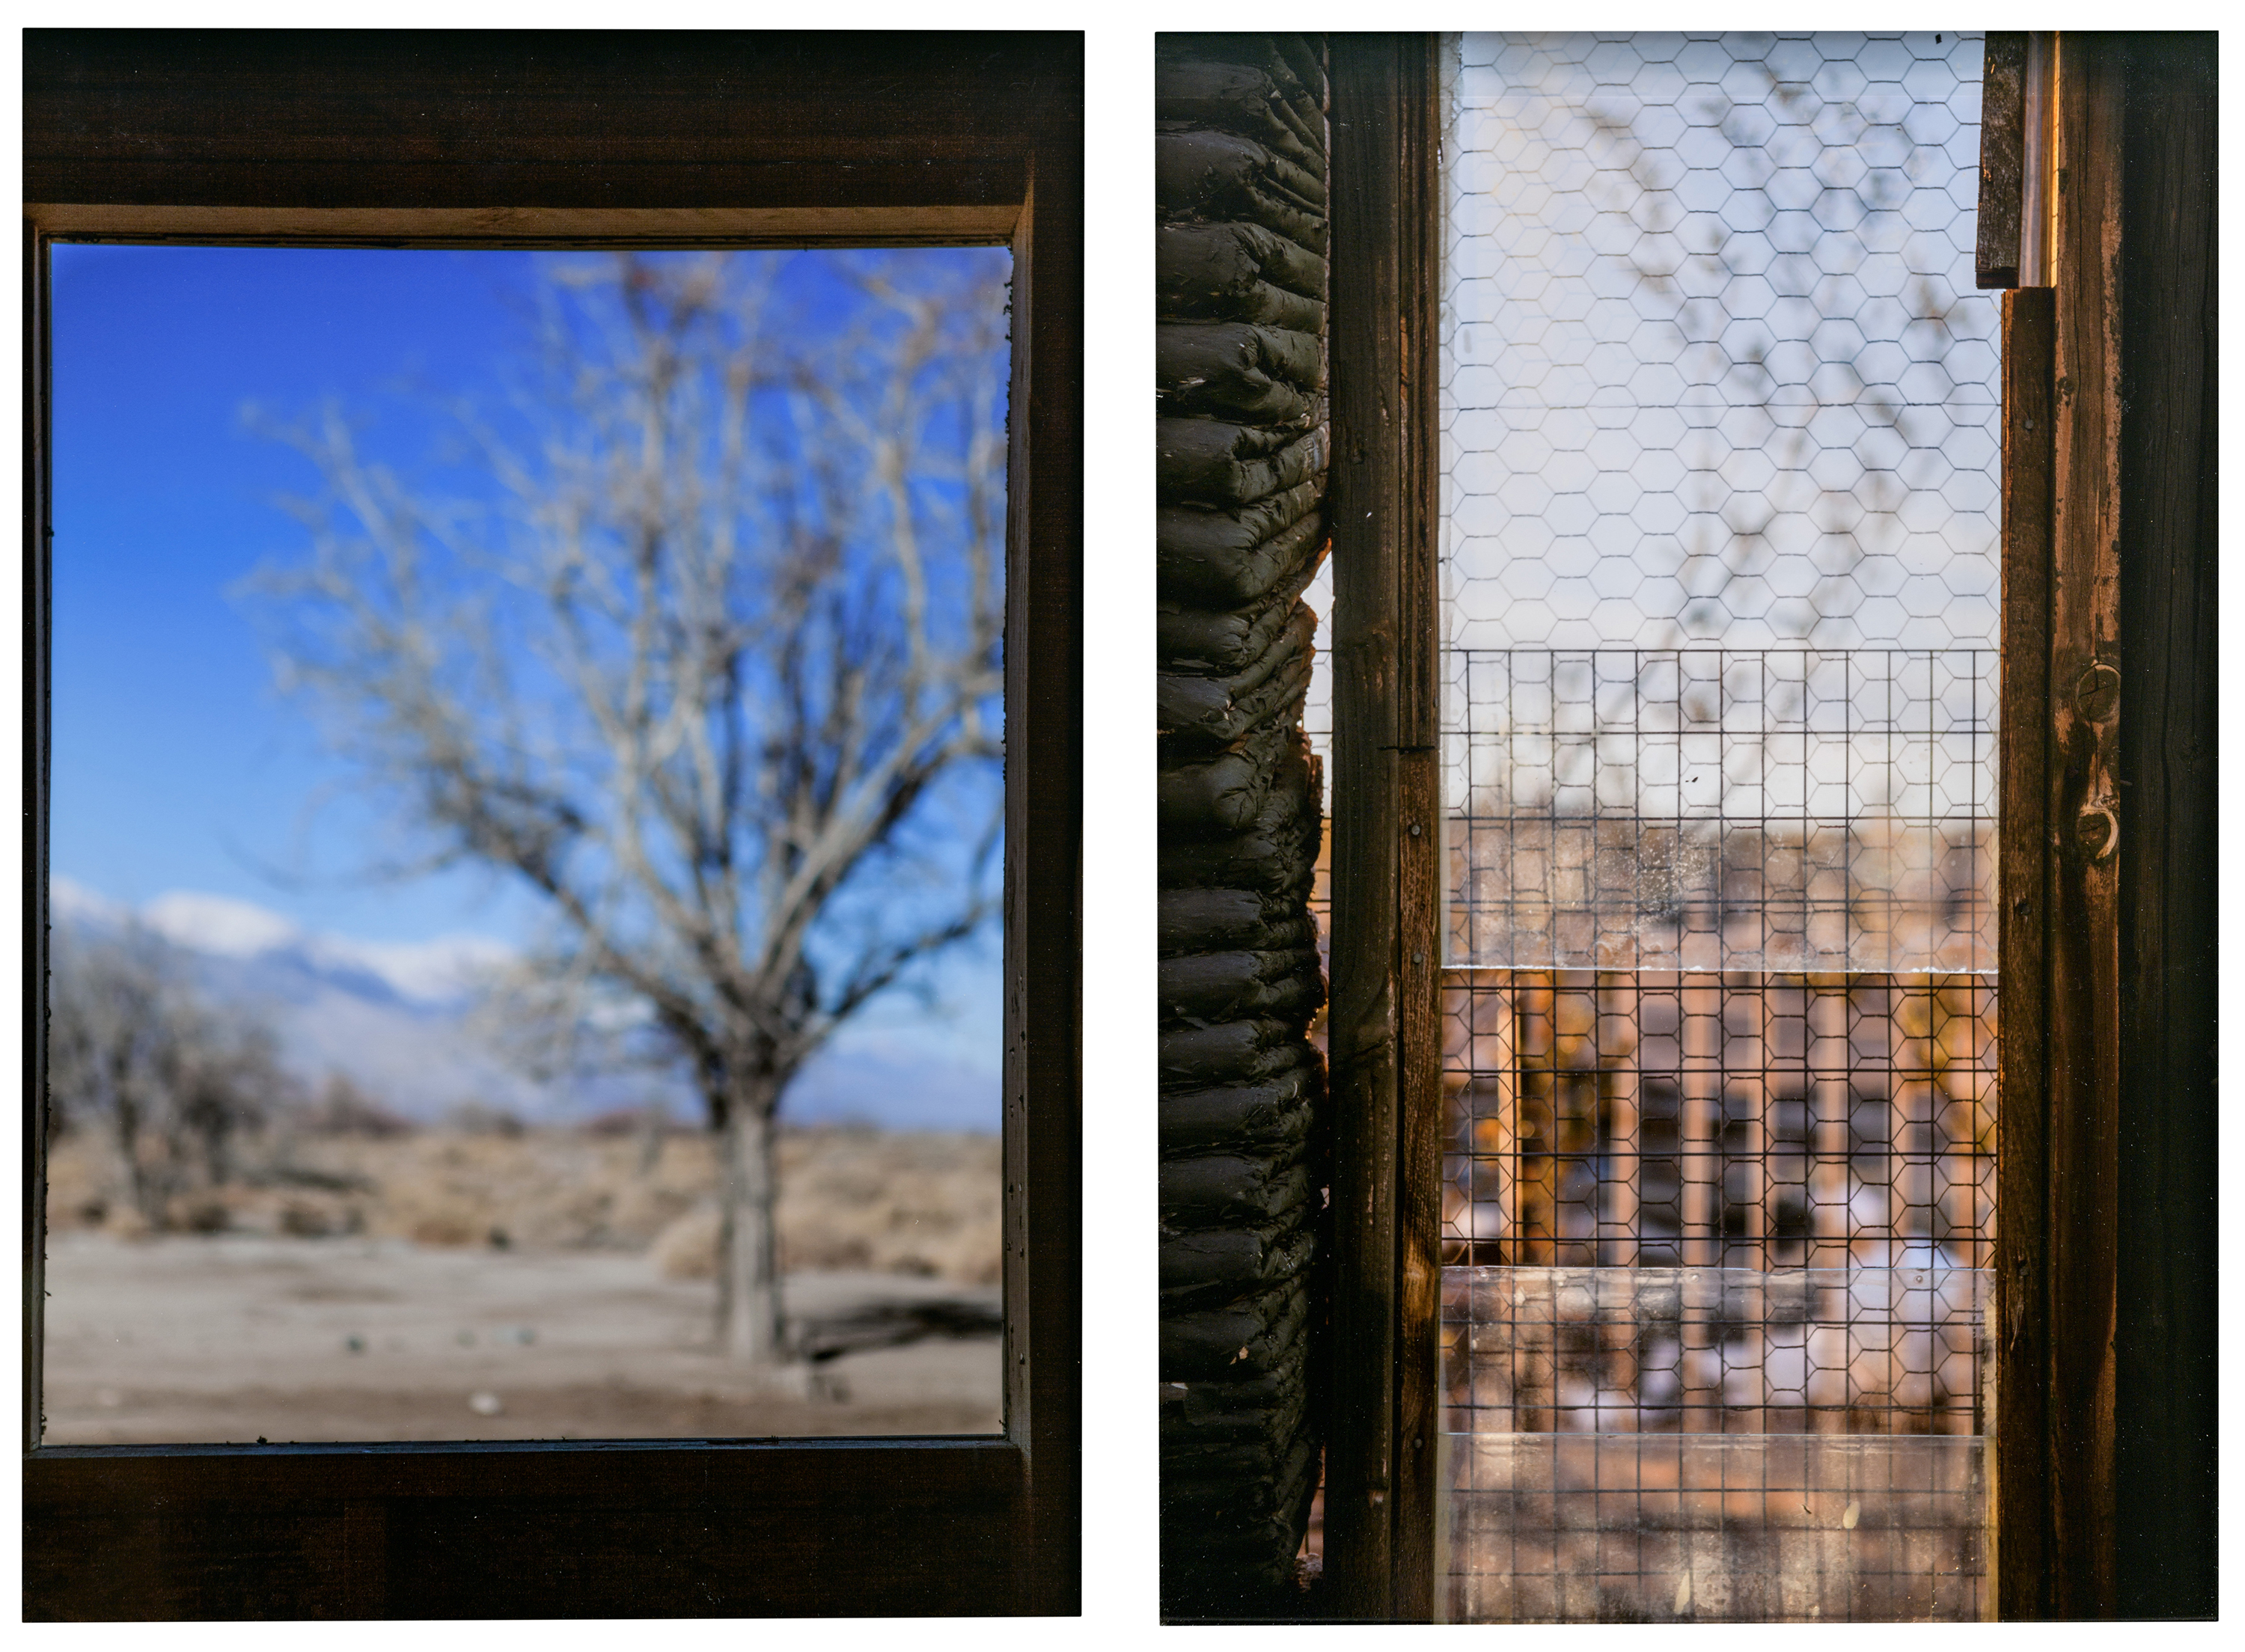 Left: Christina Fernandez, Toyo (Manzanar), 2017; Right: Christina Fernandez, Noah (Joshua Tree), 2016; Both: Los Angeles County Museum of Art, purchased with funds provided by Sharyn and Bruce Charnas, Dr. Janet Mohle-Boetani, and the Ralph M. Parsons Fund, © Christina Ferndandez, photos © Museum Associates/LACMA